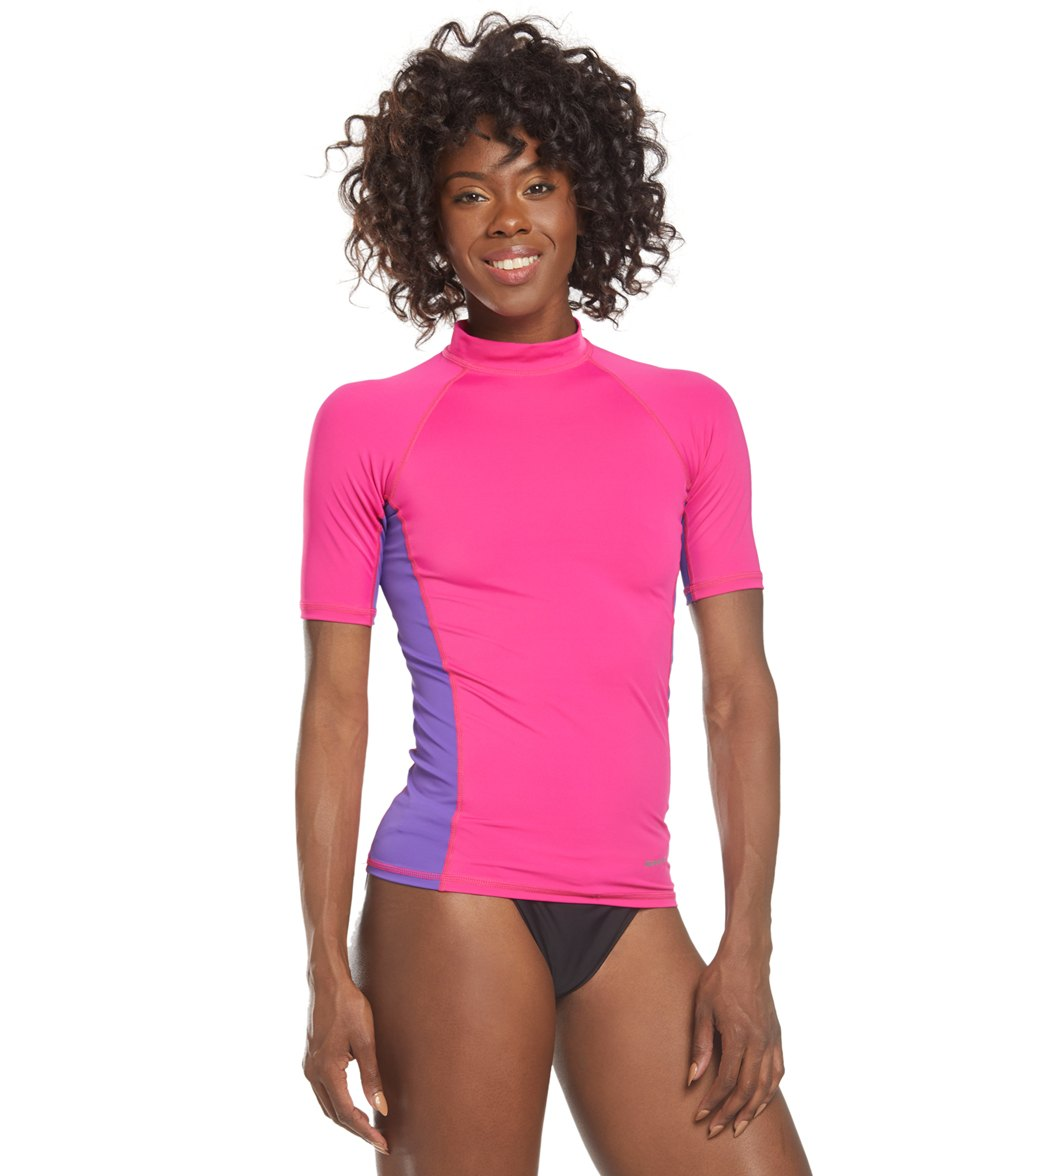 d0a7c5c6ba1 Buy Women s Rash Guards   Swim Shirts Online at SwimOutlet.com